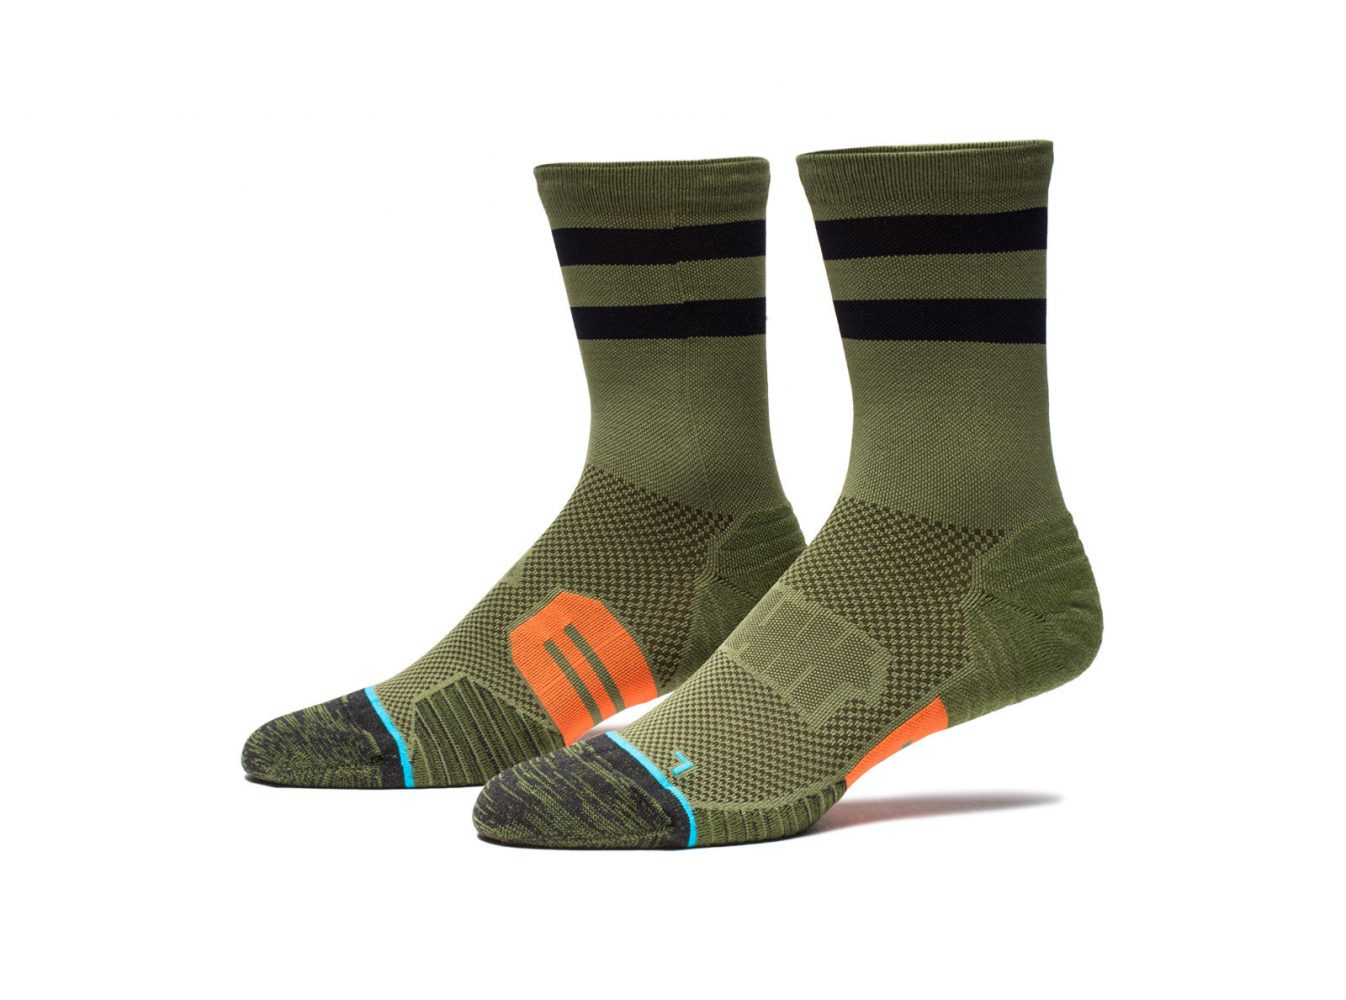 apparel_socks_undftdxstance_undefeated-stance-fusion-run-crew-sock_m446d15uno.view_1.color_olive